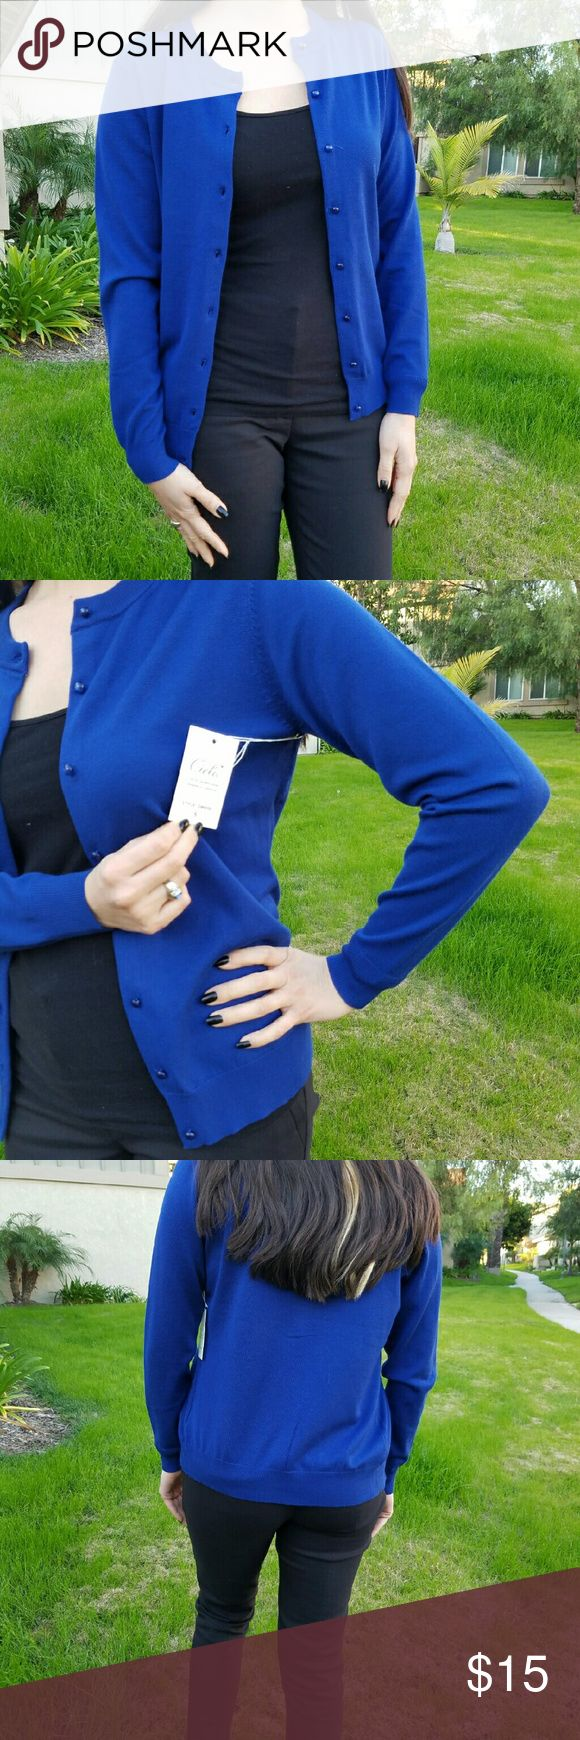 Royal blue cardigan Brand: Cielo  Size: Small Condition: New with tags  No flaws.  Same day/next day shipping:) questions? Ask me! Cielo Sweaters Cardigans